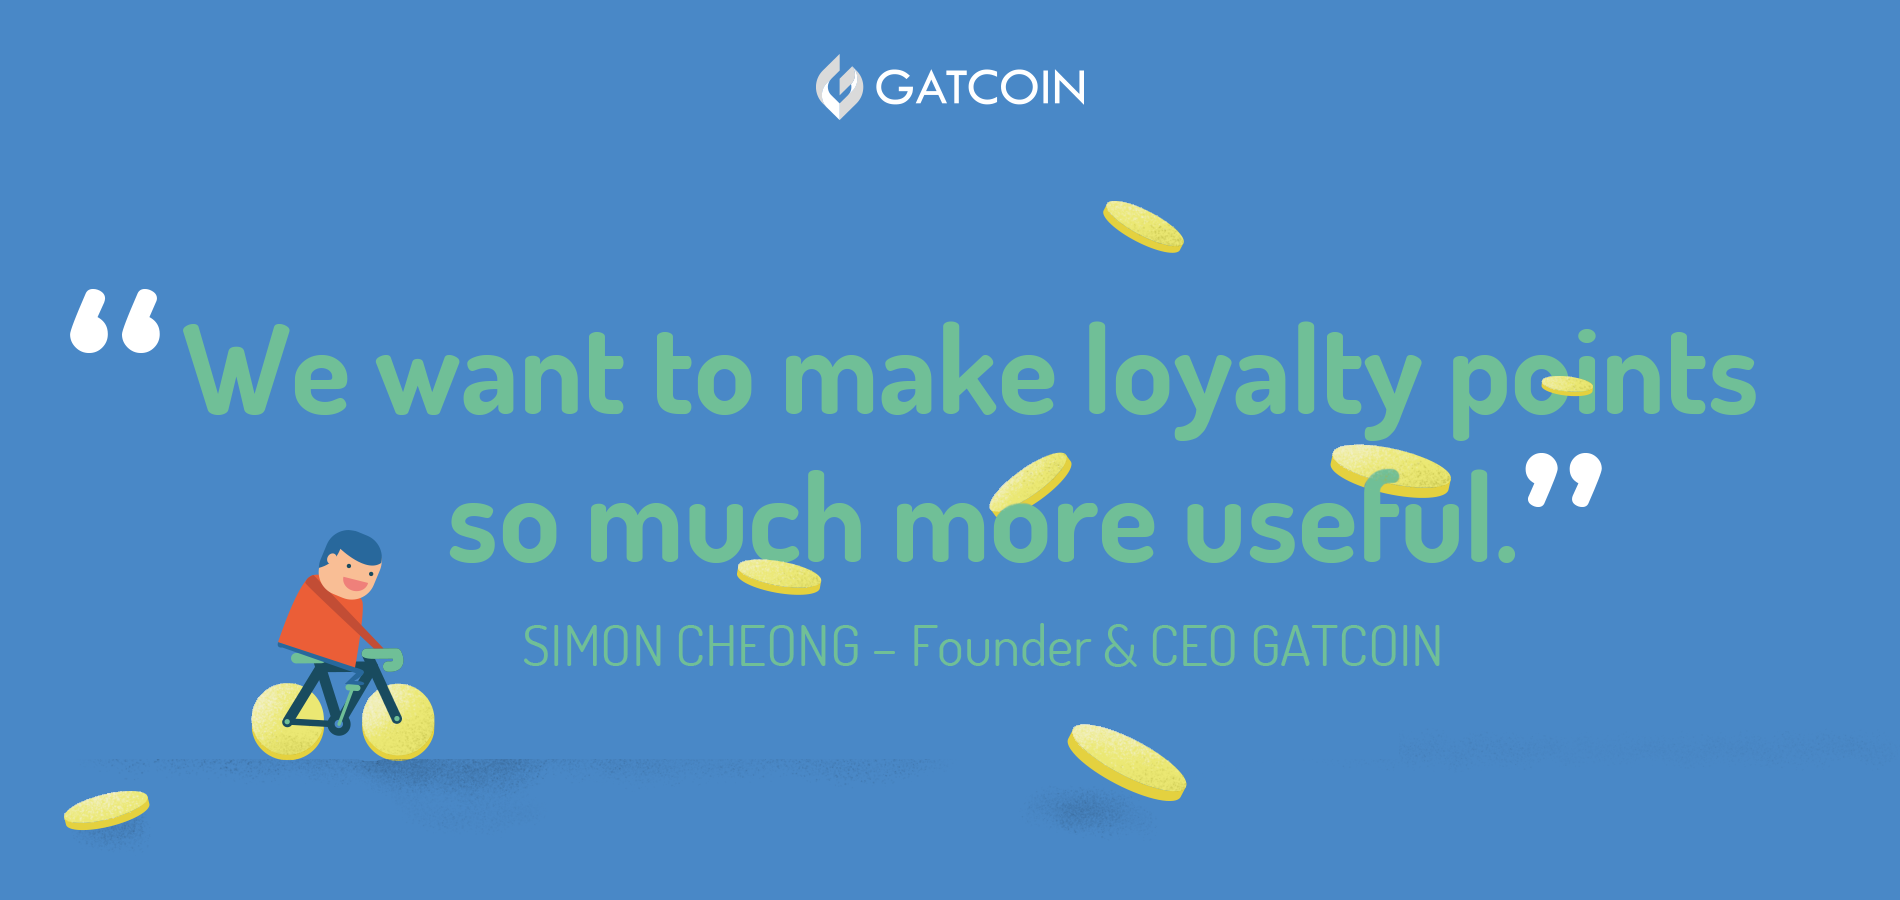 GATCOIN_Quotes_loyalty_points_02